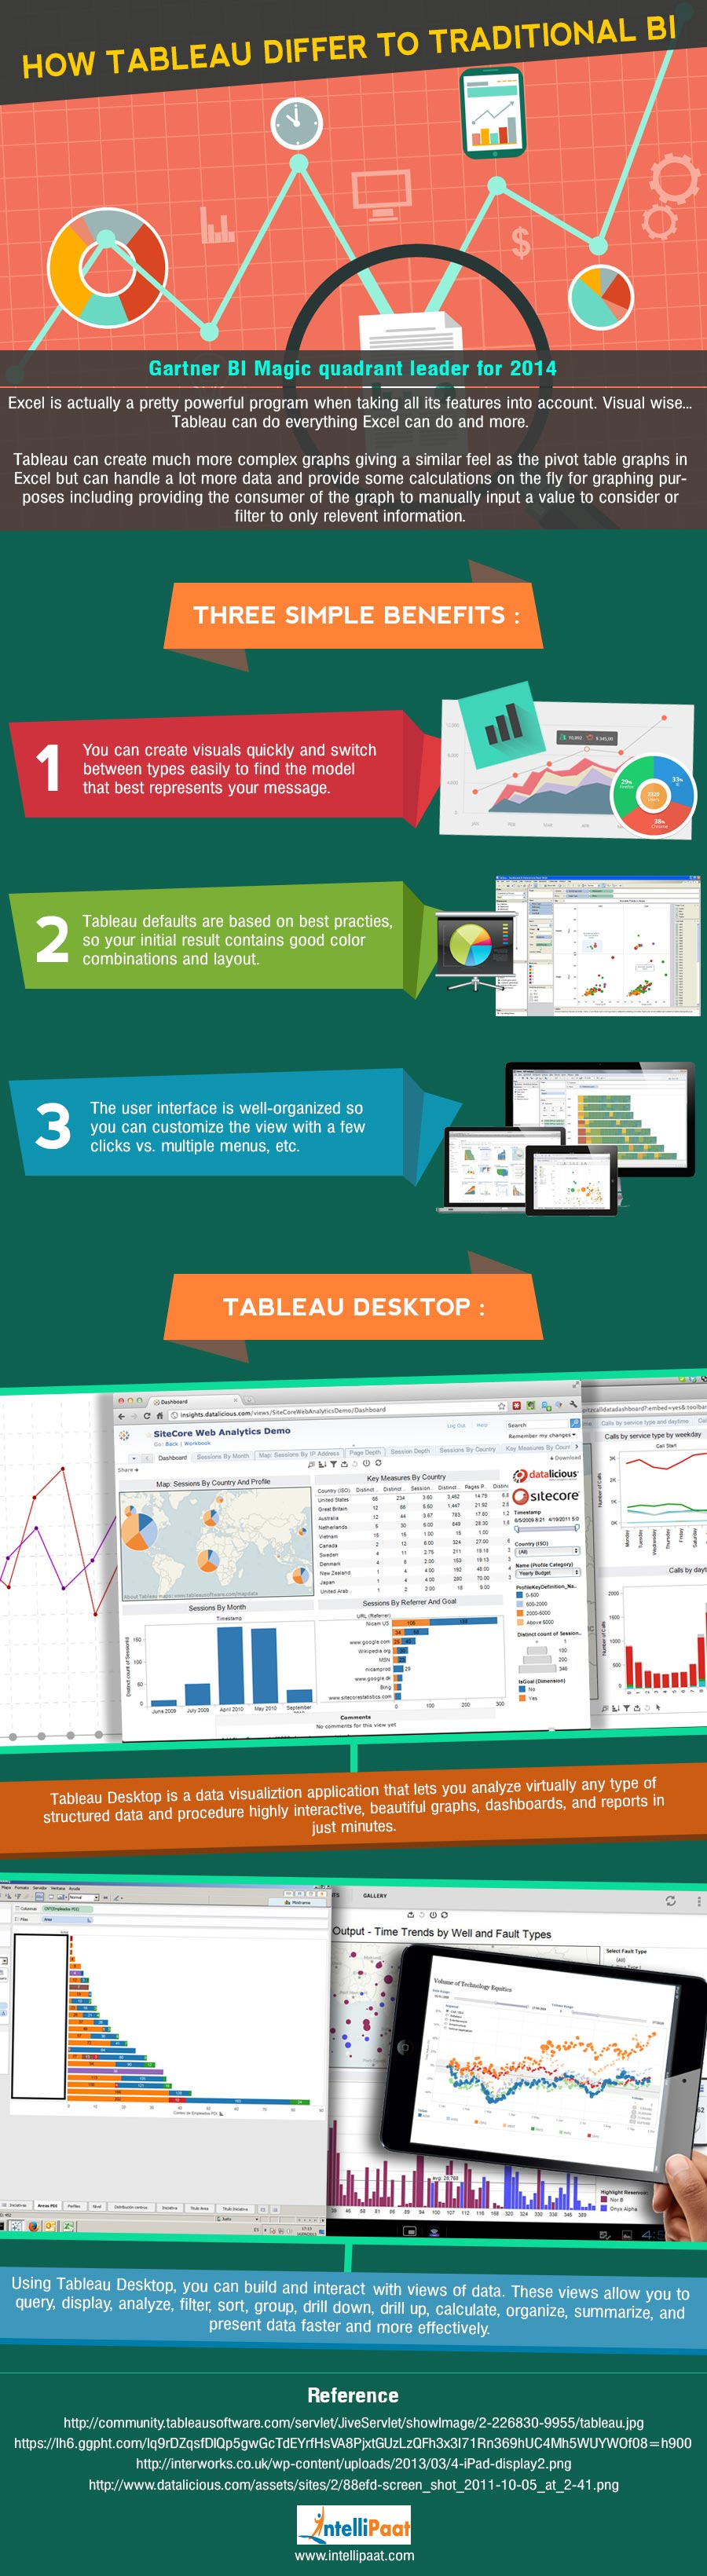 How Tableau Differ to Traditional BI